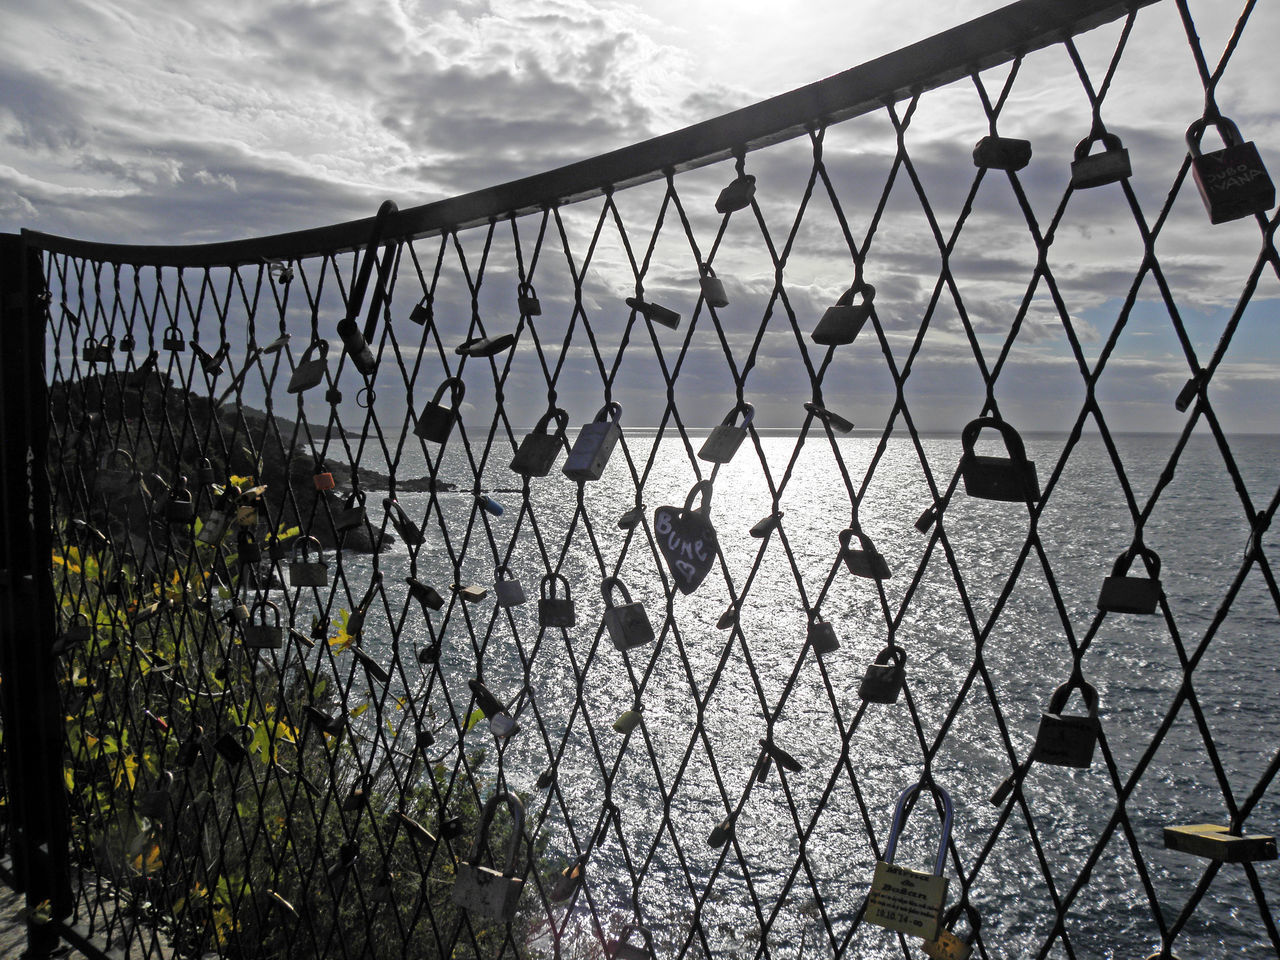 chainlink fence, metal, safety, protection, security, day, no people, outdoors, sky, close-up, architecture, nature, water, prison